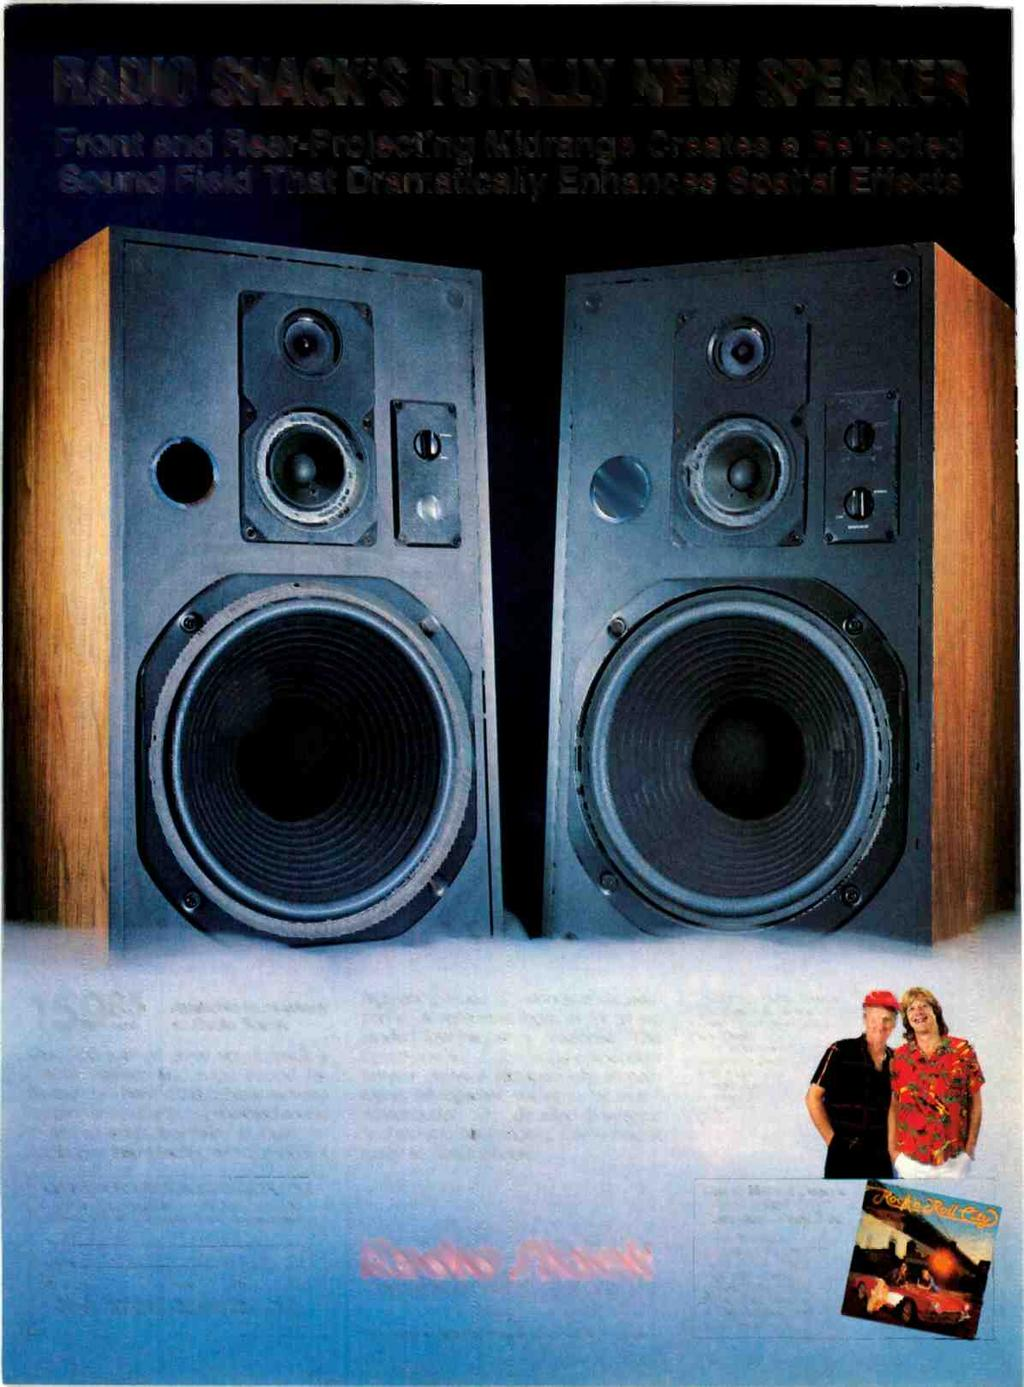 Special Report Vim Digital Disc Players Rac Exploding 21 Audio Loudspeaker Thump Eliminator Radio Shacks Totally New Speaker Front And Rear Projecting Midrange Creates A Reflected Sound Field